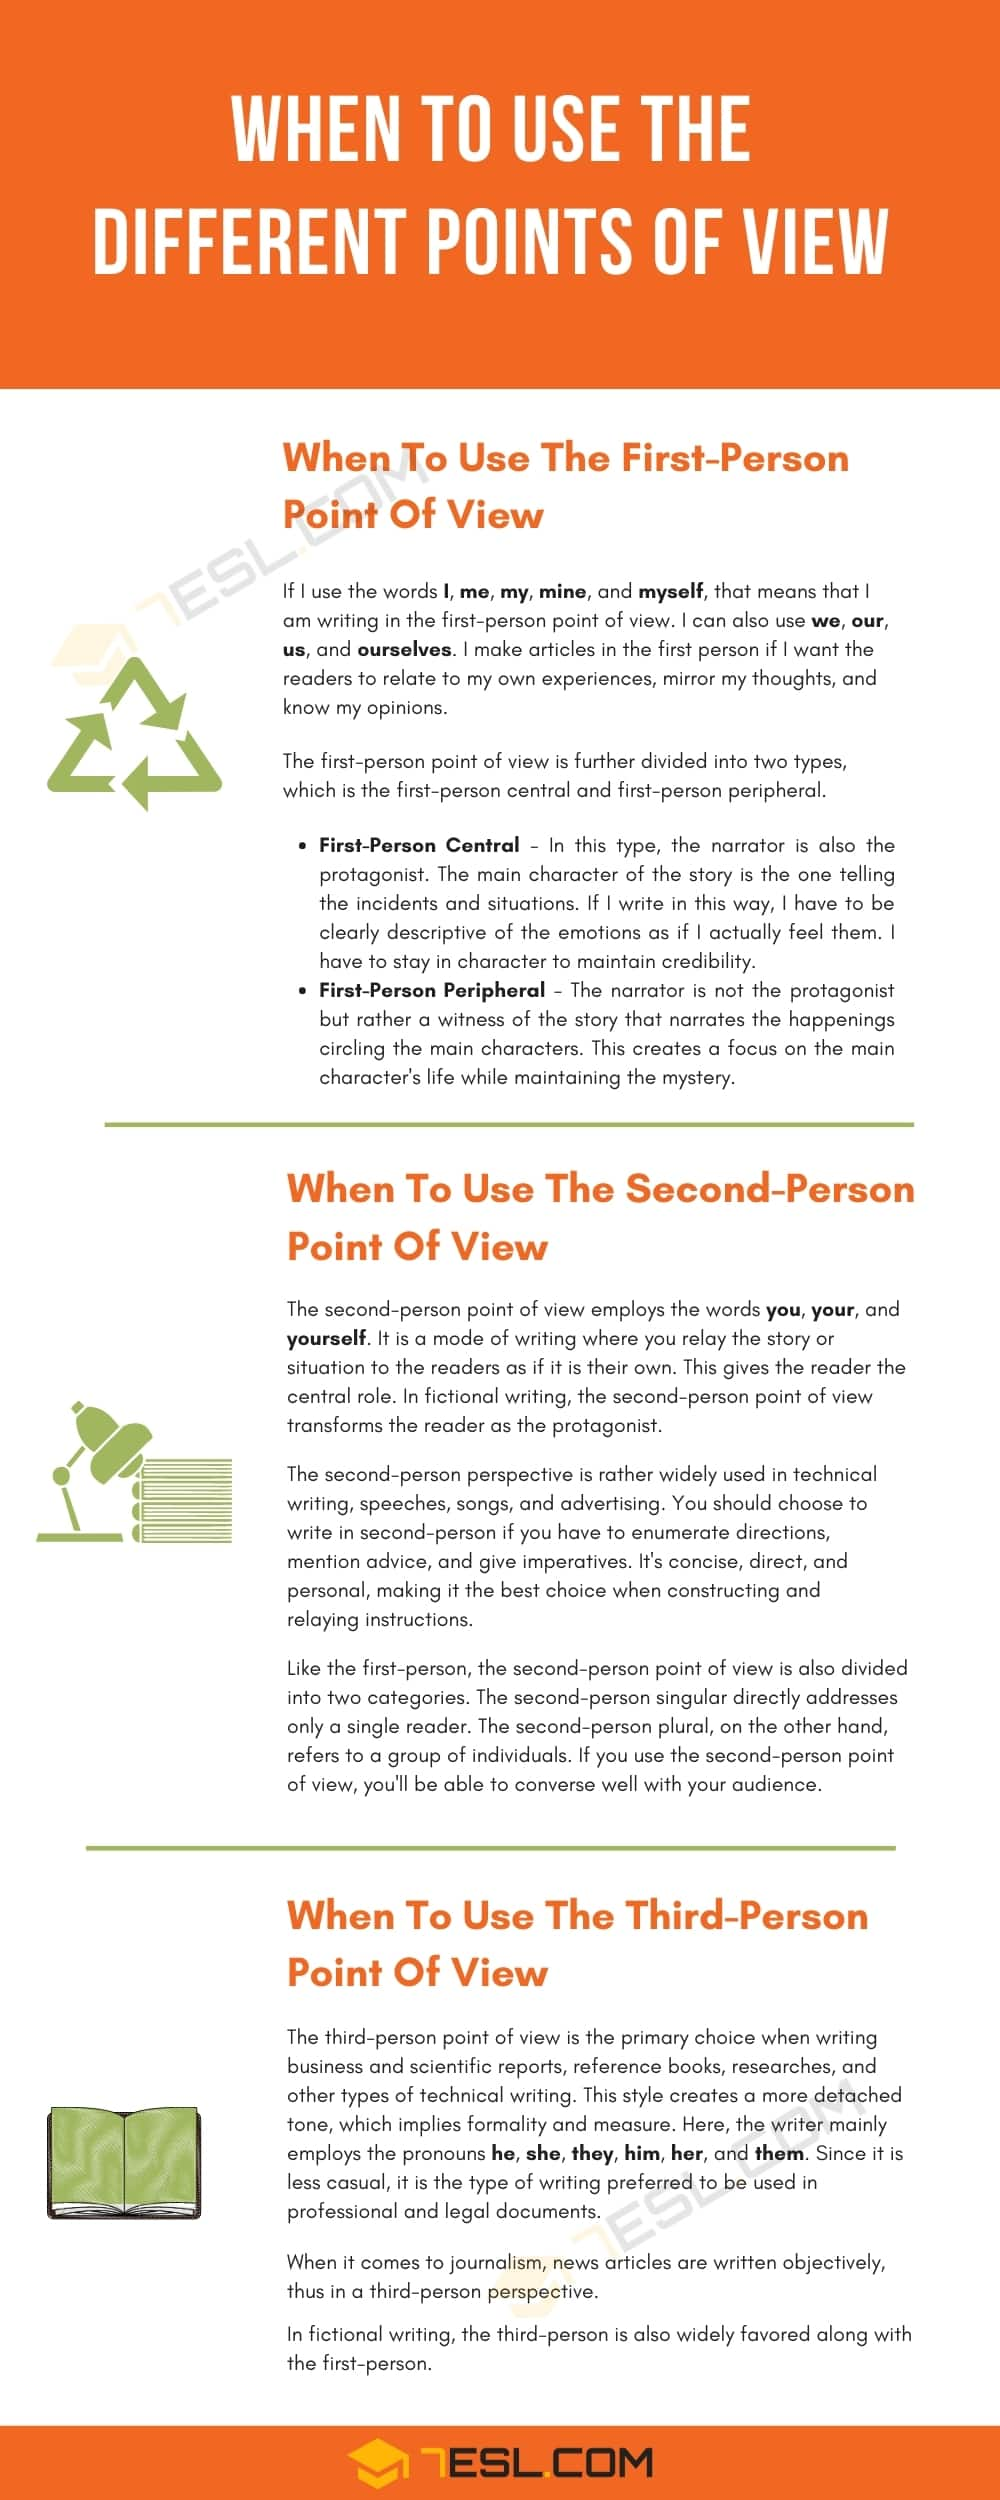 First, Second, and Third Person: When To Use The Different Points Of View